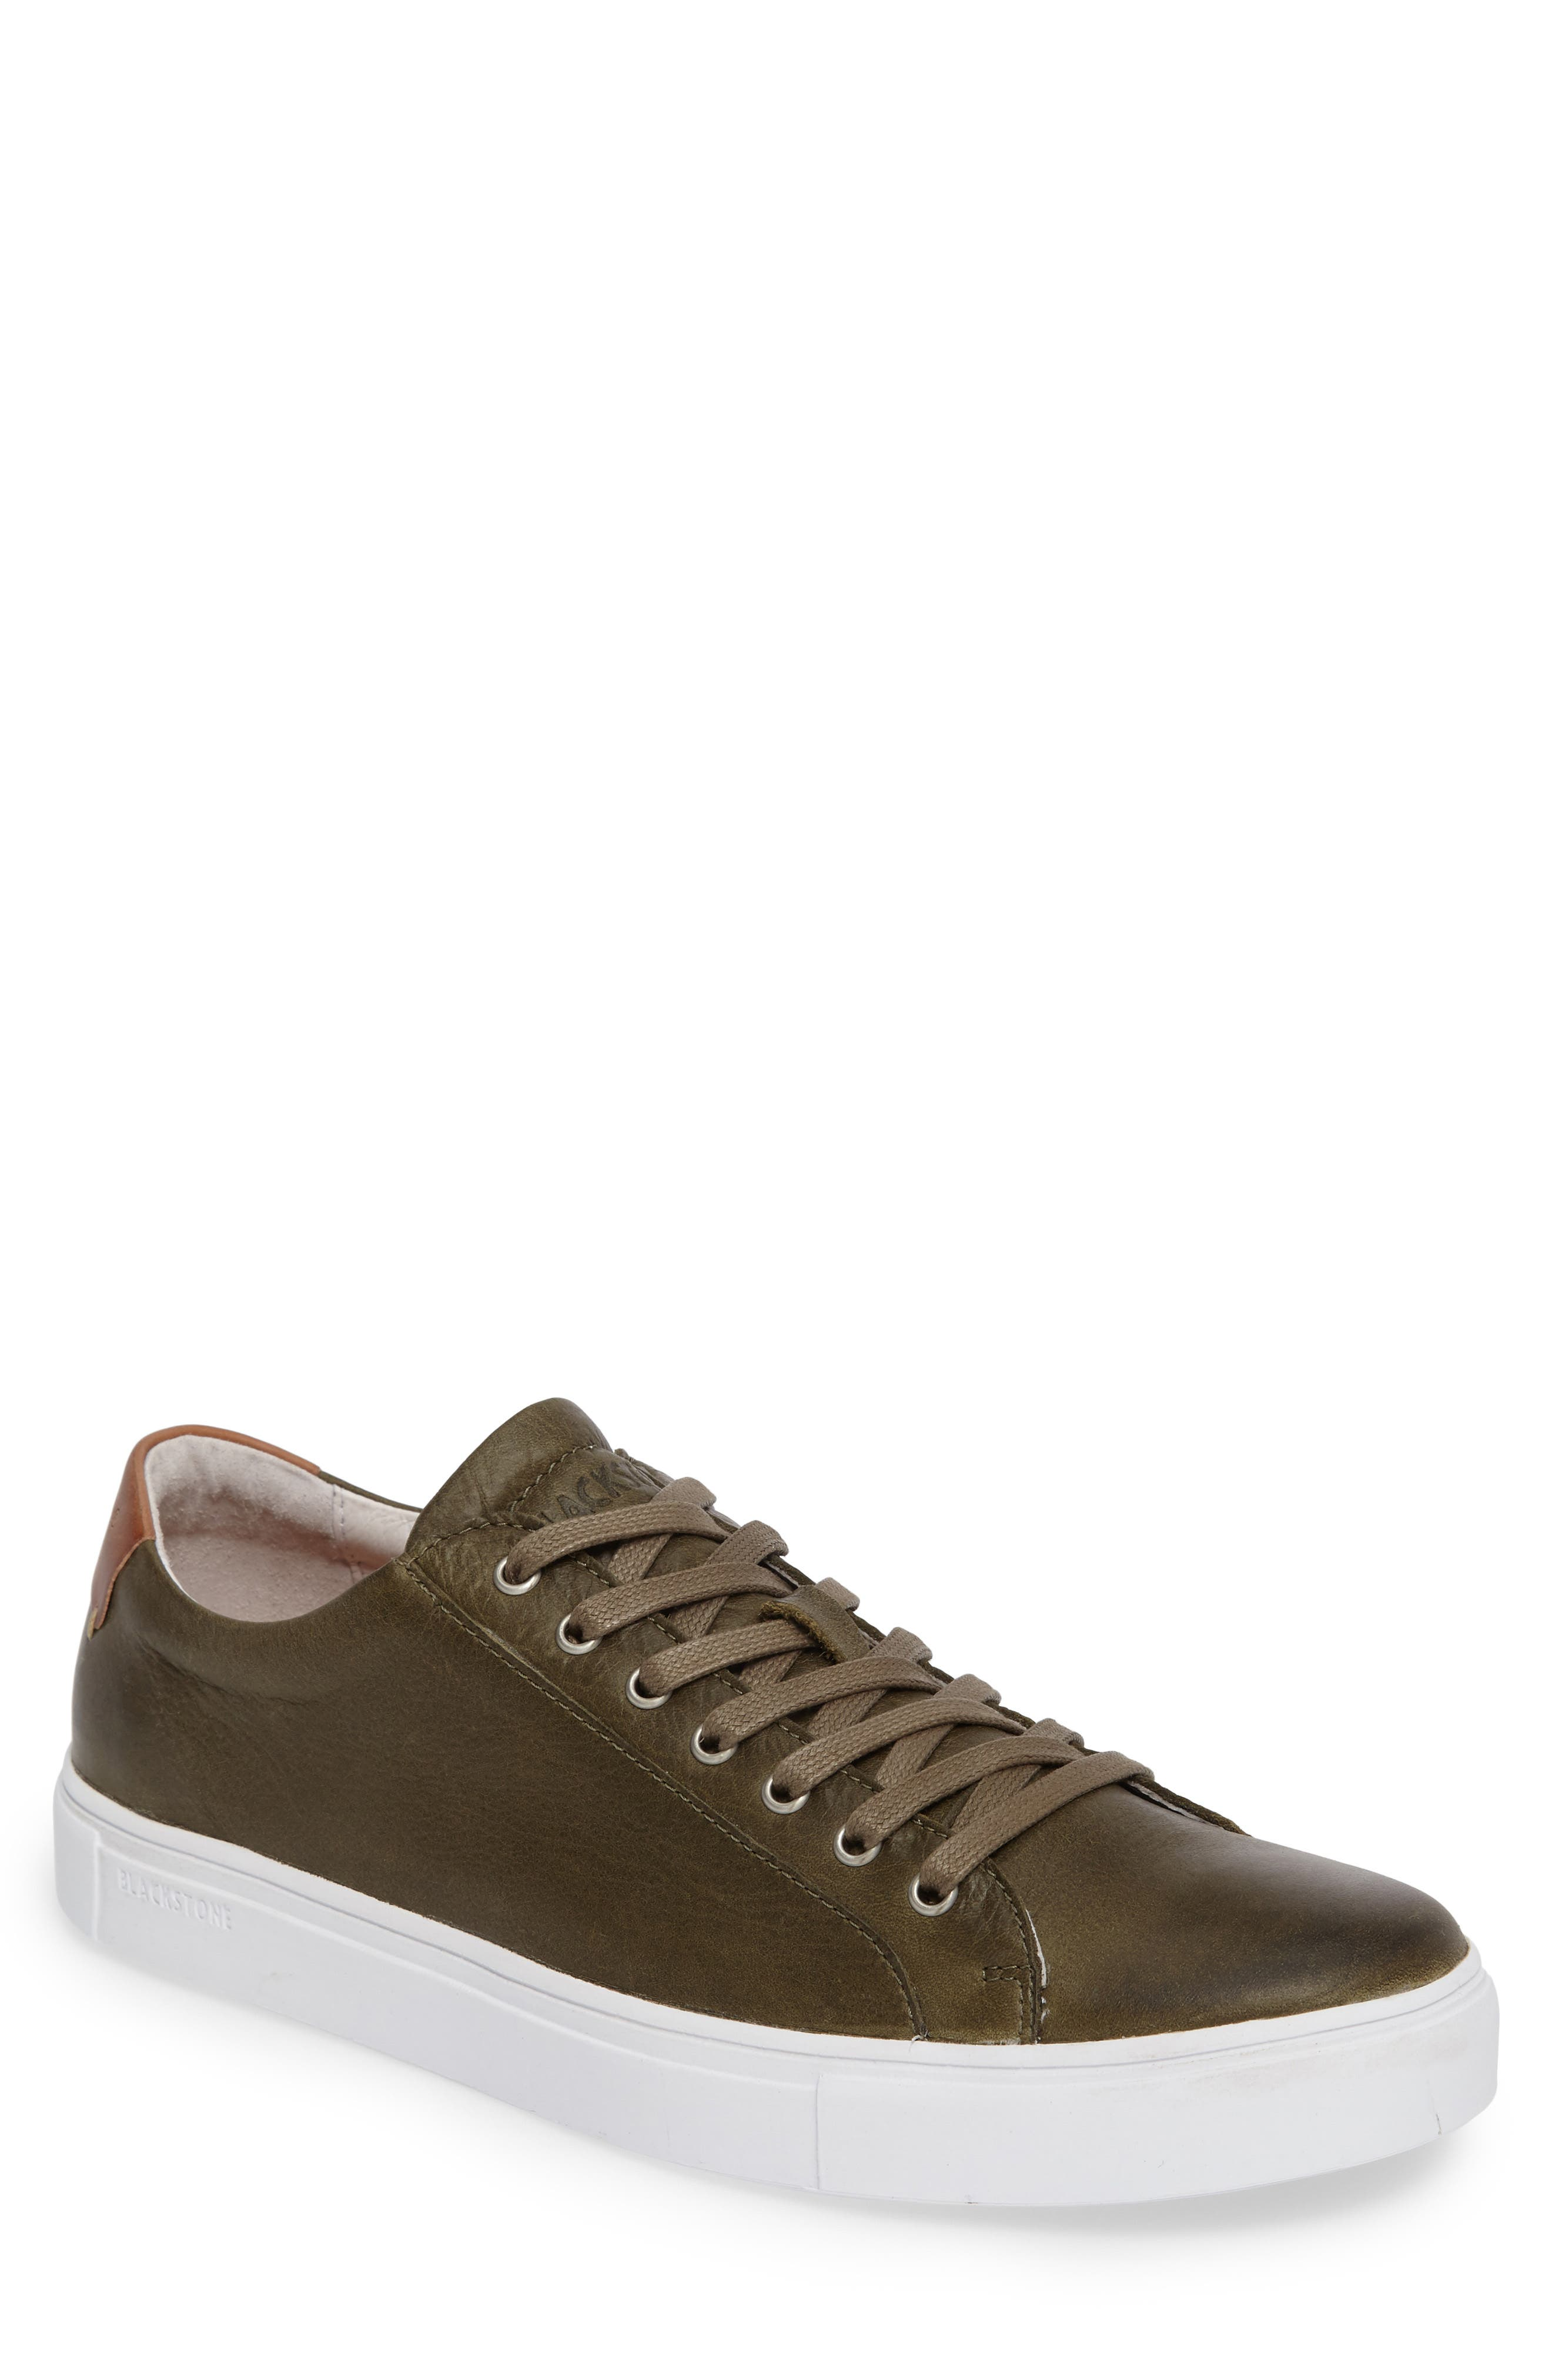 Every man needs a leather sneaker in his wardrobe, and this one is cut with a classic low profile that pairs well with any sporty-casual look. An elongated lacing system cinches the laid-back style, while an optic-white cupsole enhances the sporty vibe. Style Name: Blackstone Nm01 7 Eyelet Sneaker (Men). Style Number: 5411547. Available in stores.